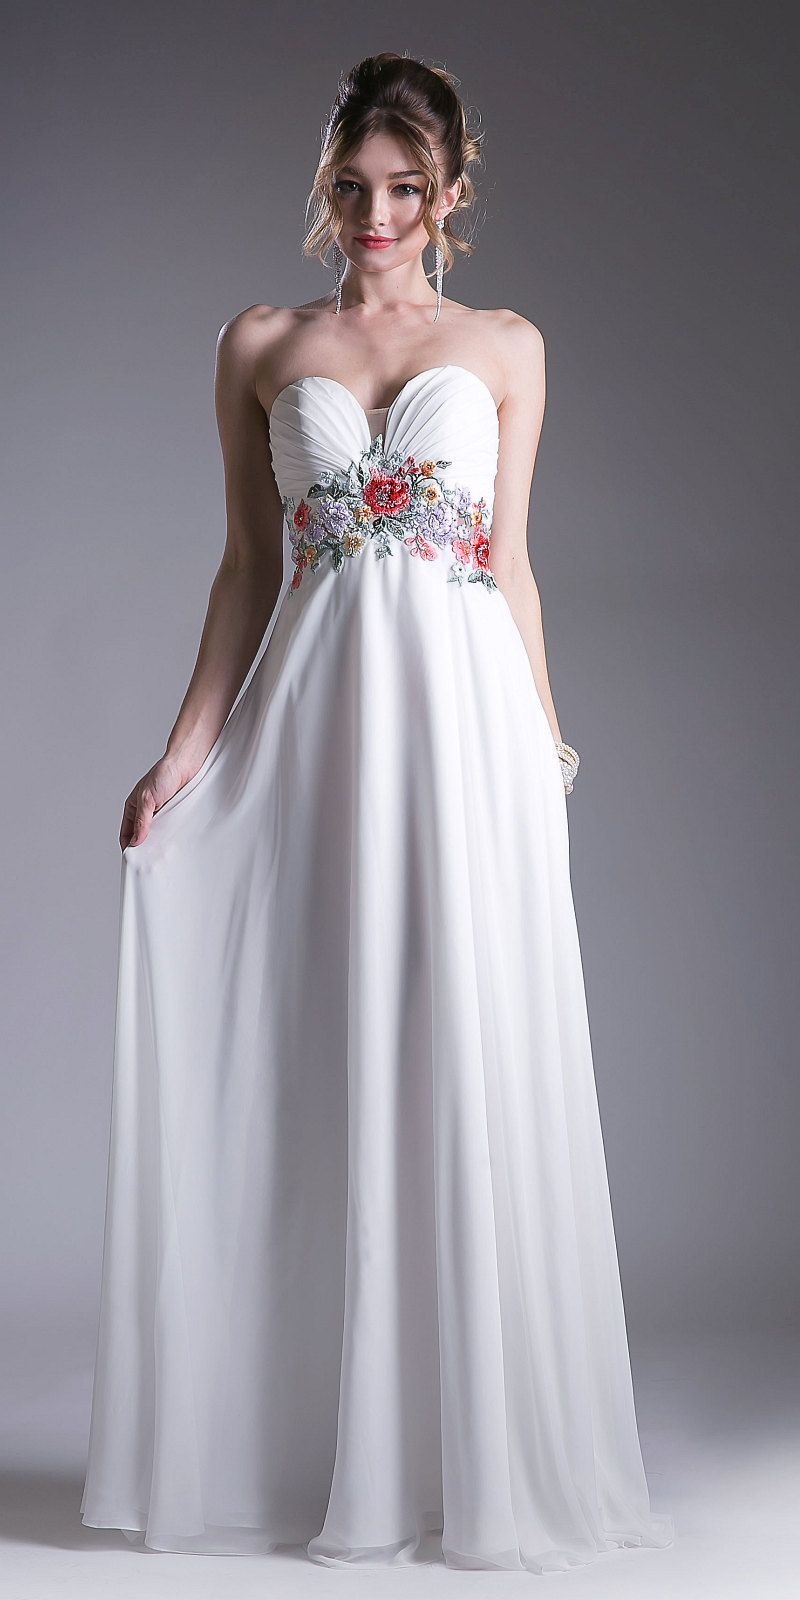 ee901911a18 Cinderella Divine HW13 Off White Empire Waist Long Formal Dress ...